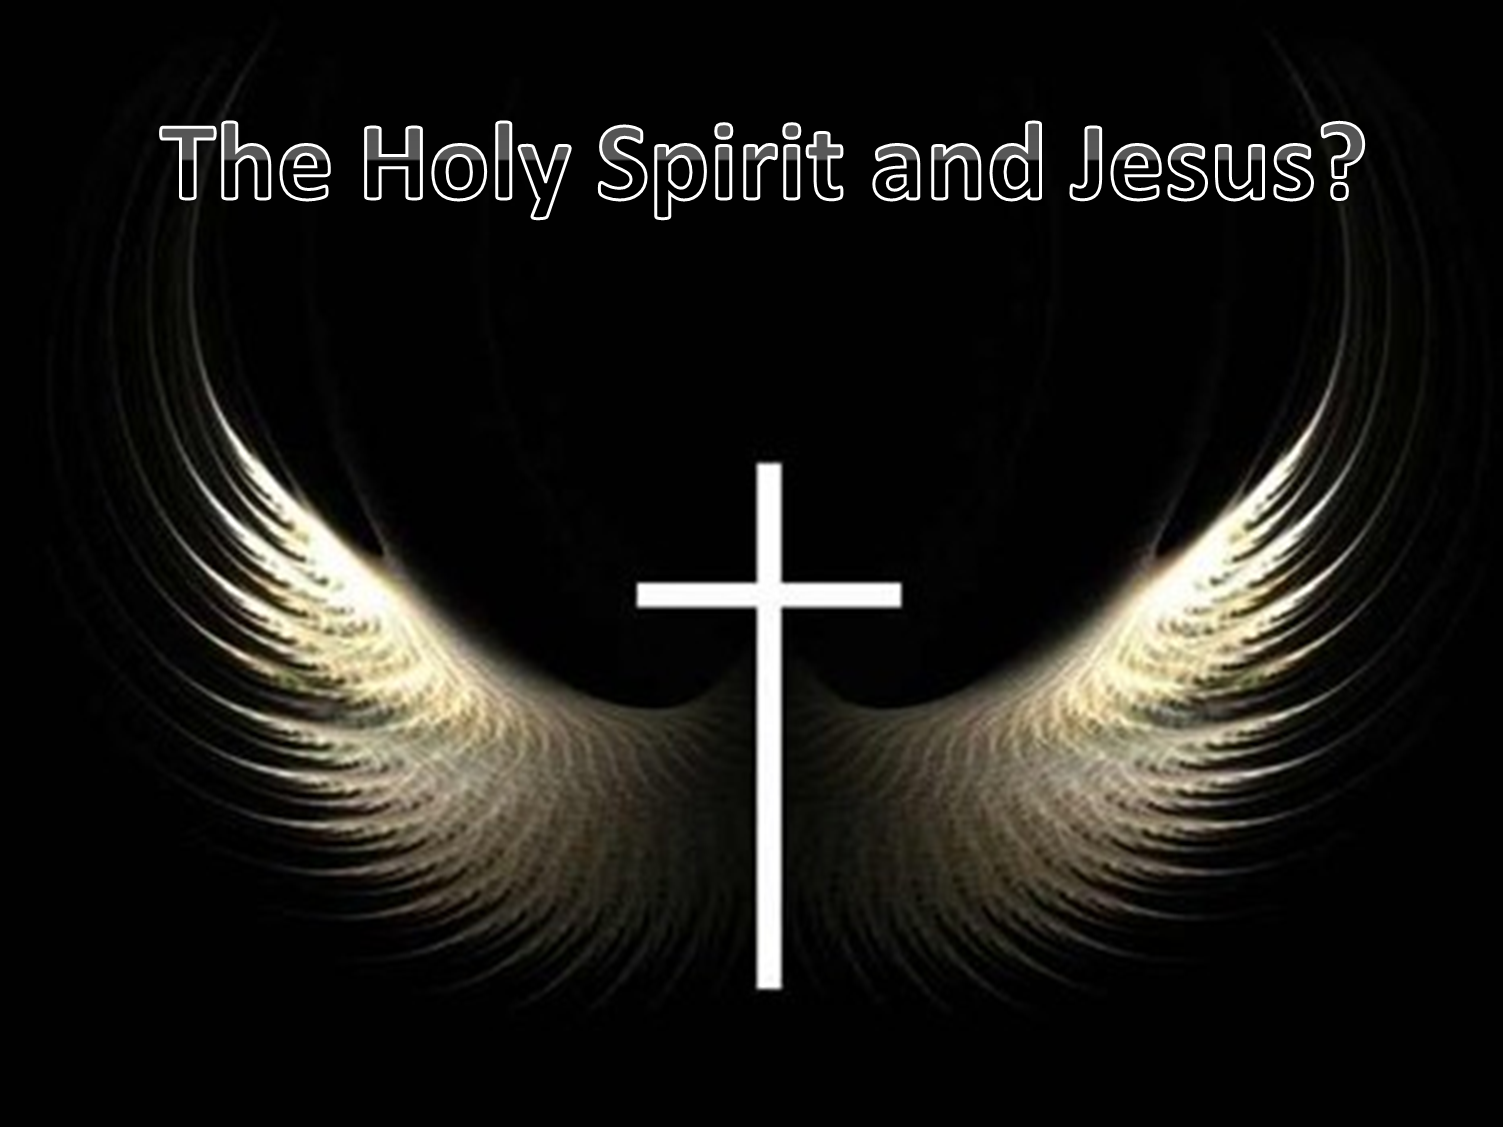 the promised holy spirit the holy spirit and jesus